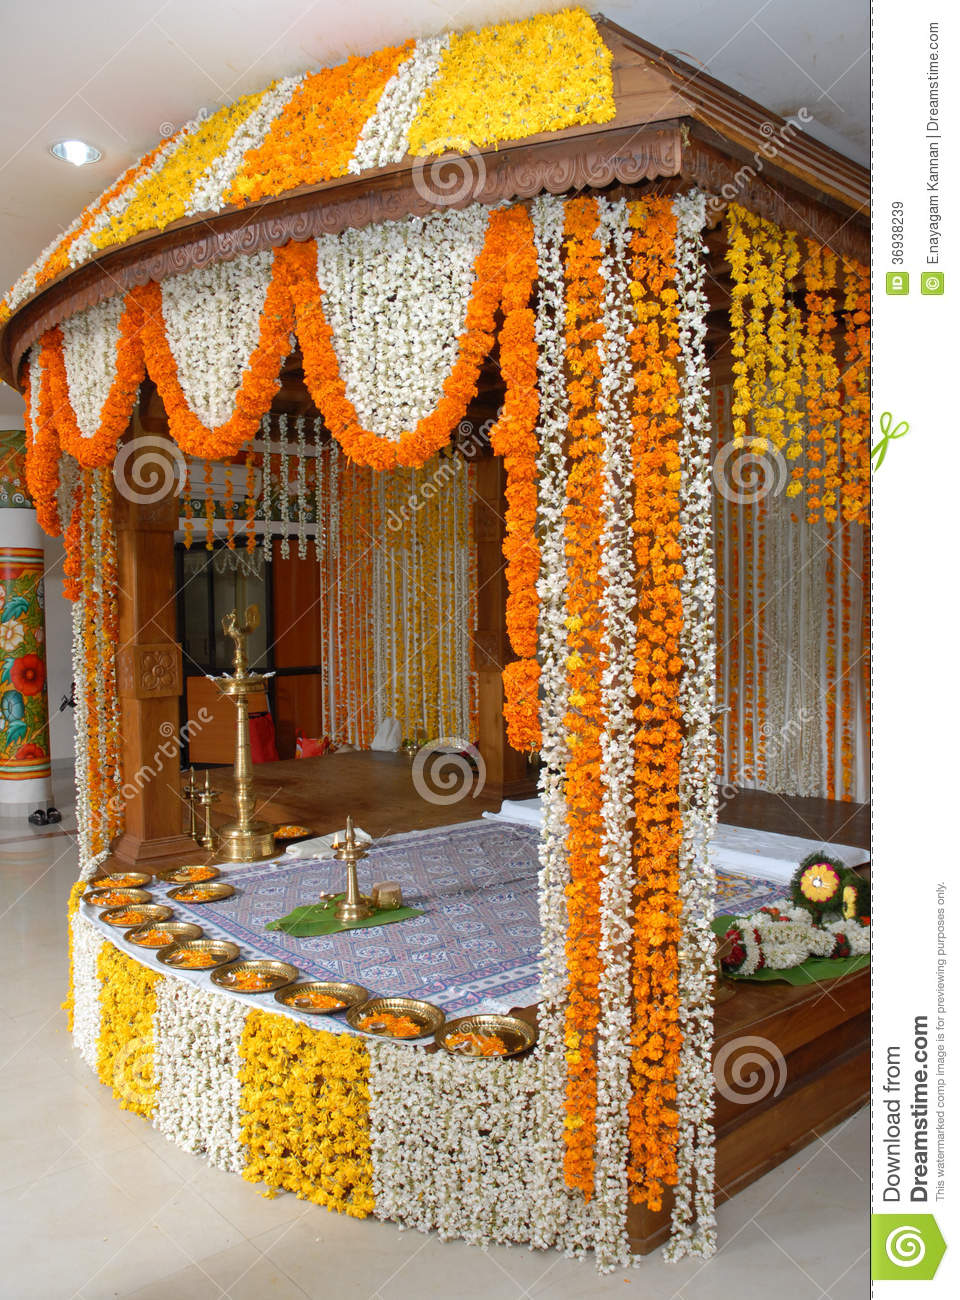 A kerala wedding flower decoration editorial stock image Home decoration lights online india